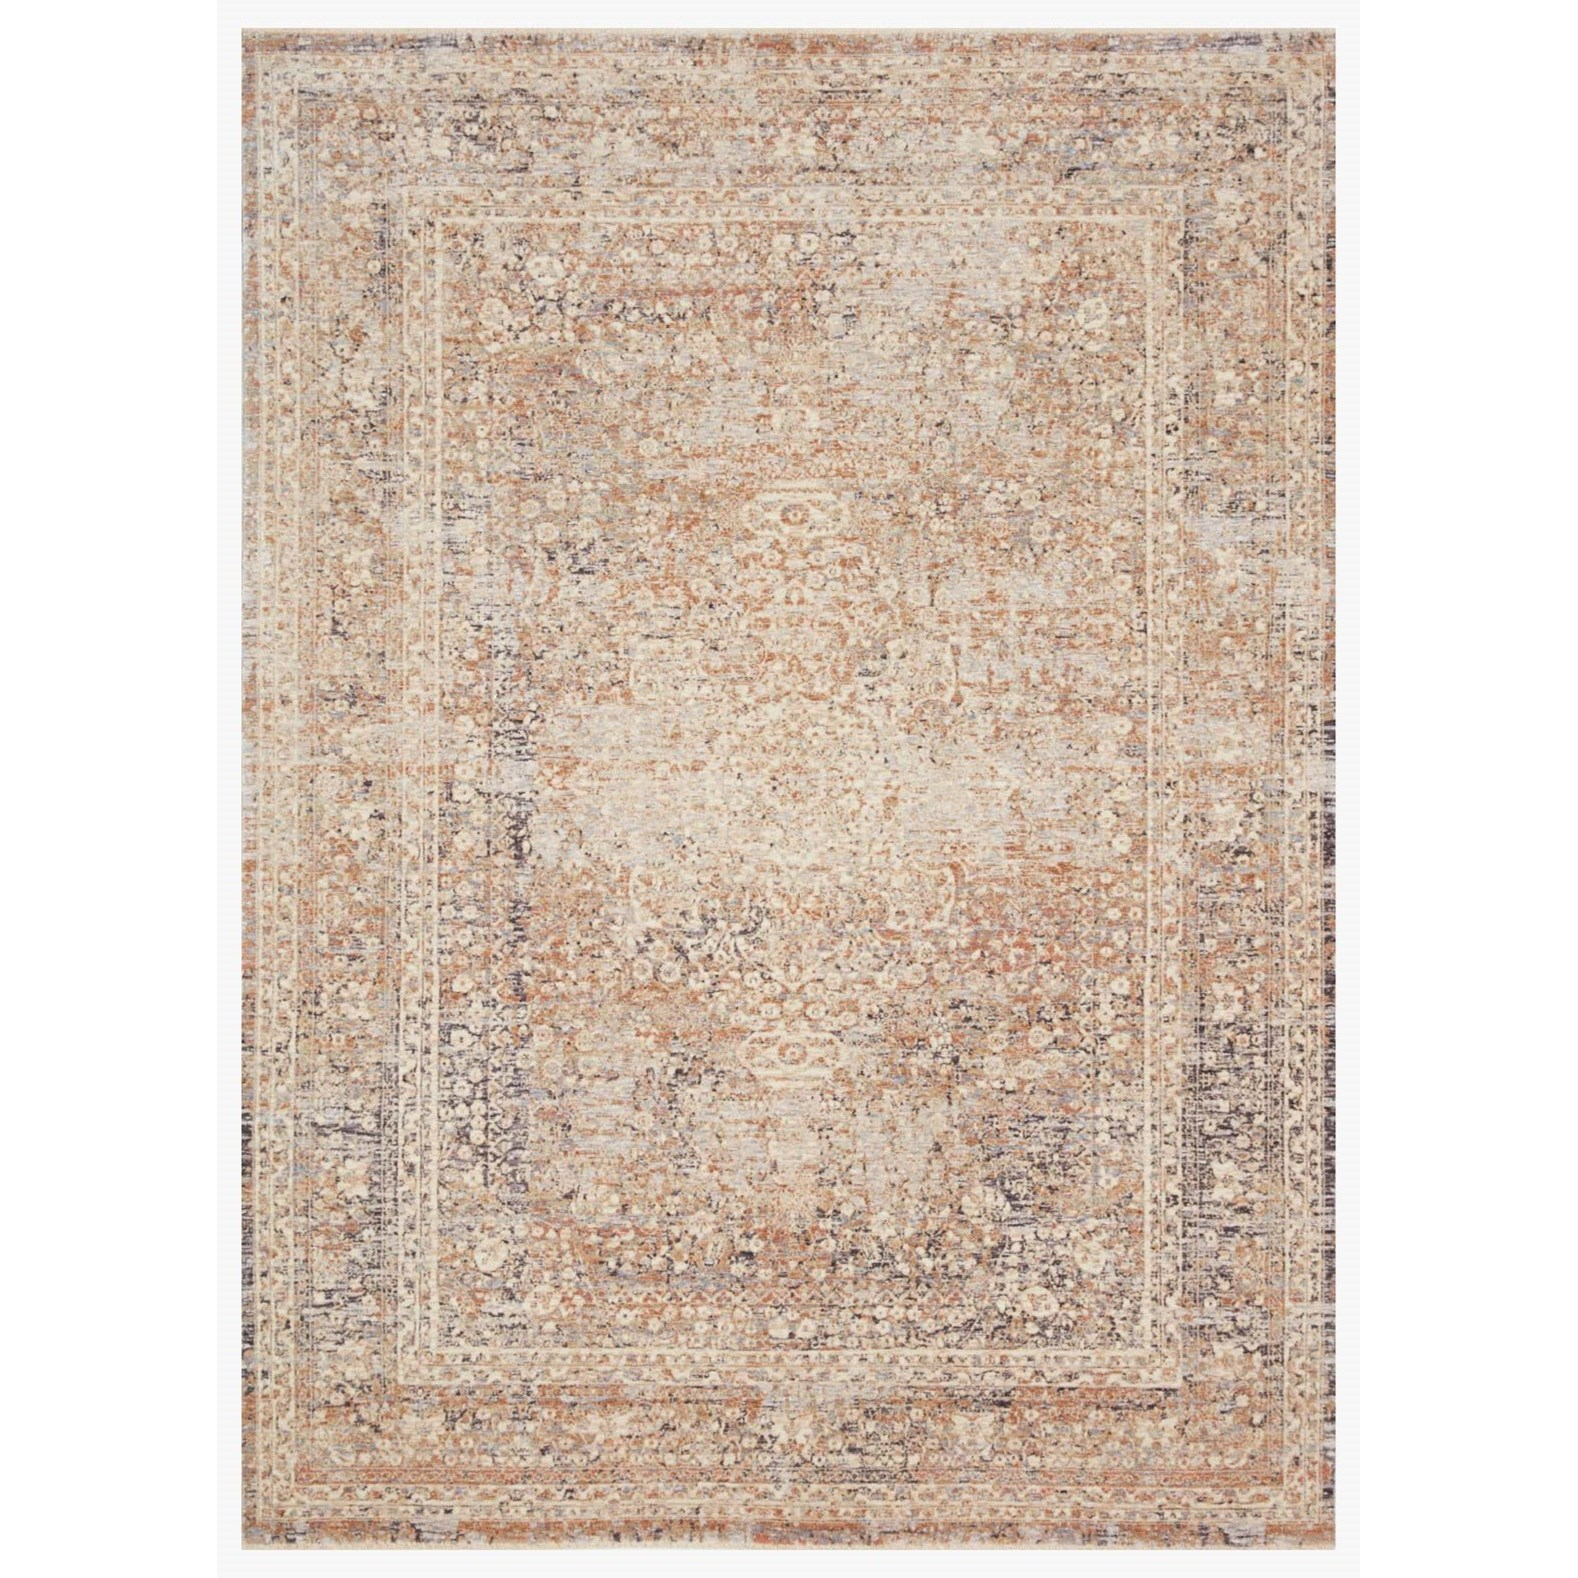 """Faye 18"""" x 18""""  Sky / Sand Rug by Loloi Rugs at Virginia Furniture Market"""